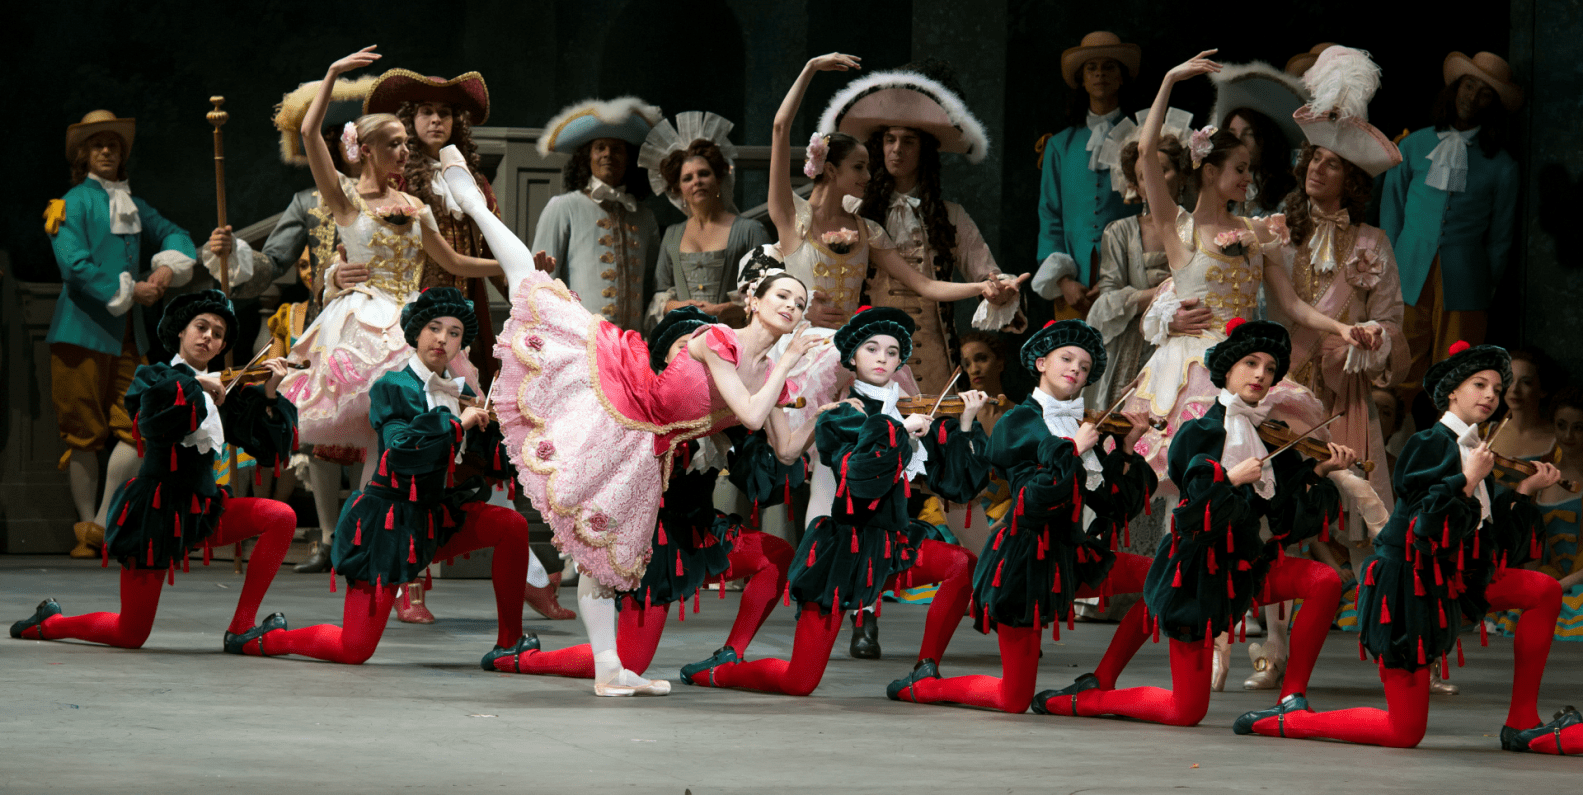 Diana Vishneva as Aurora in the Sleeping Beauty